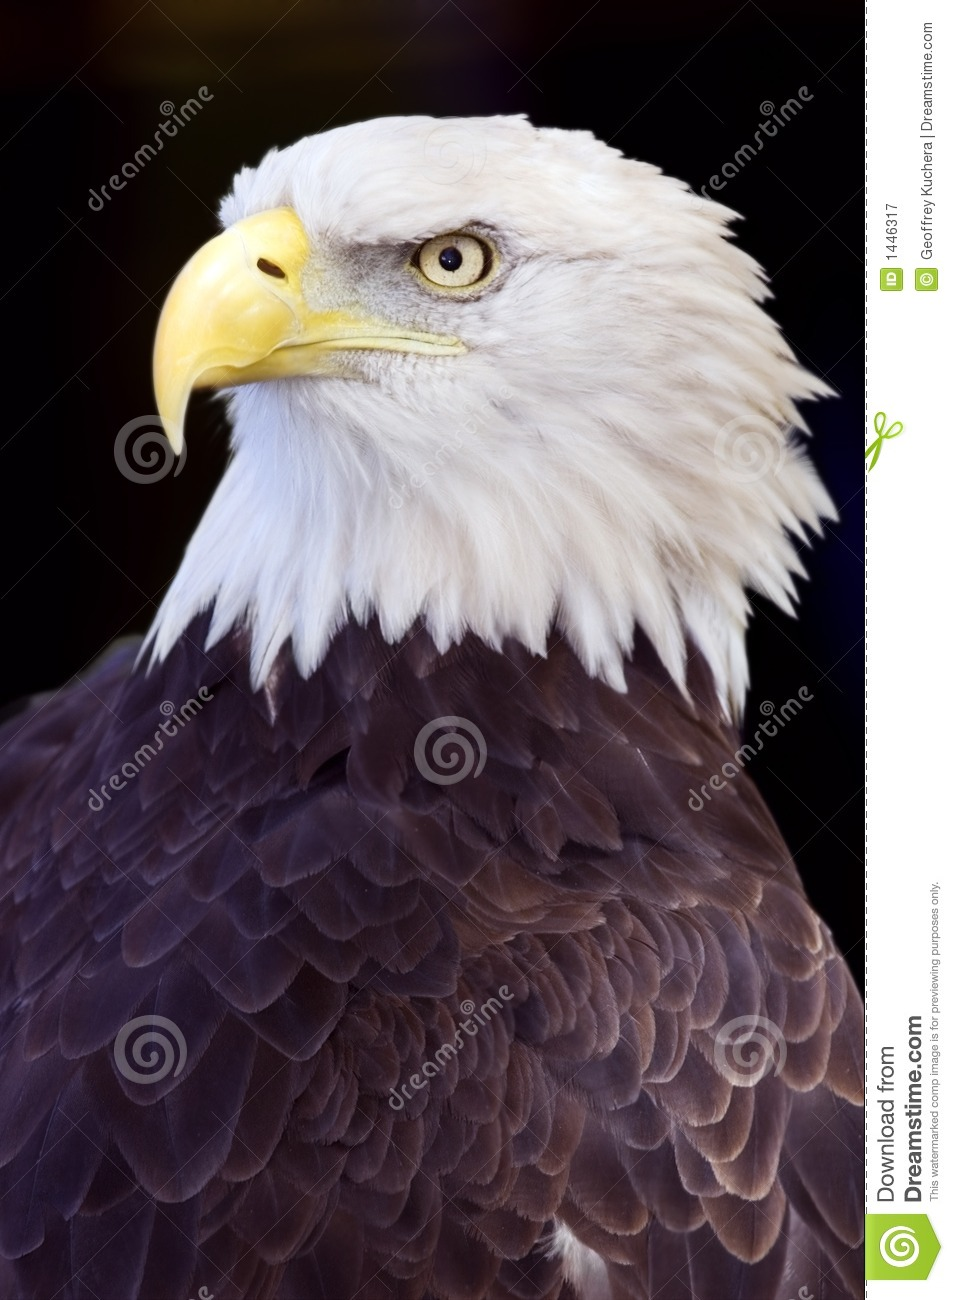 Bald Eagle (Haliaeetus leucocephalus) Against Black